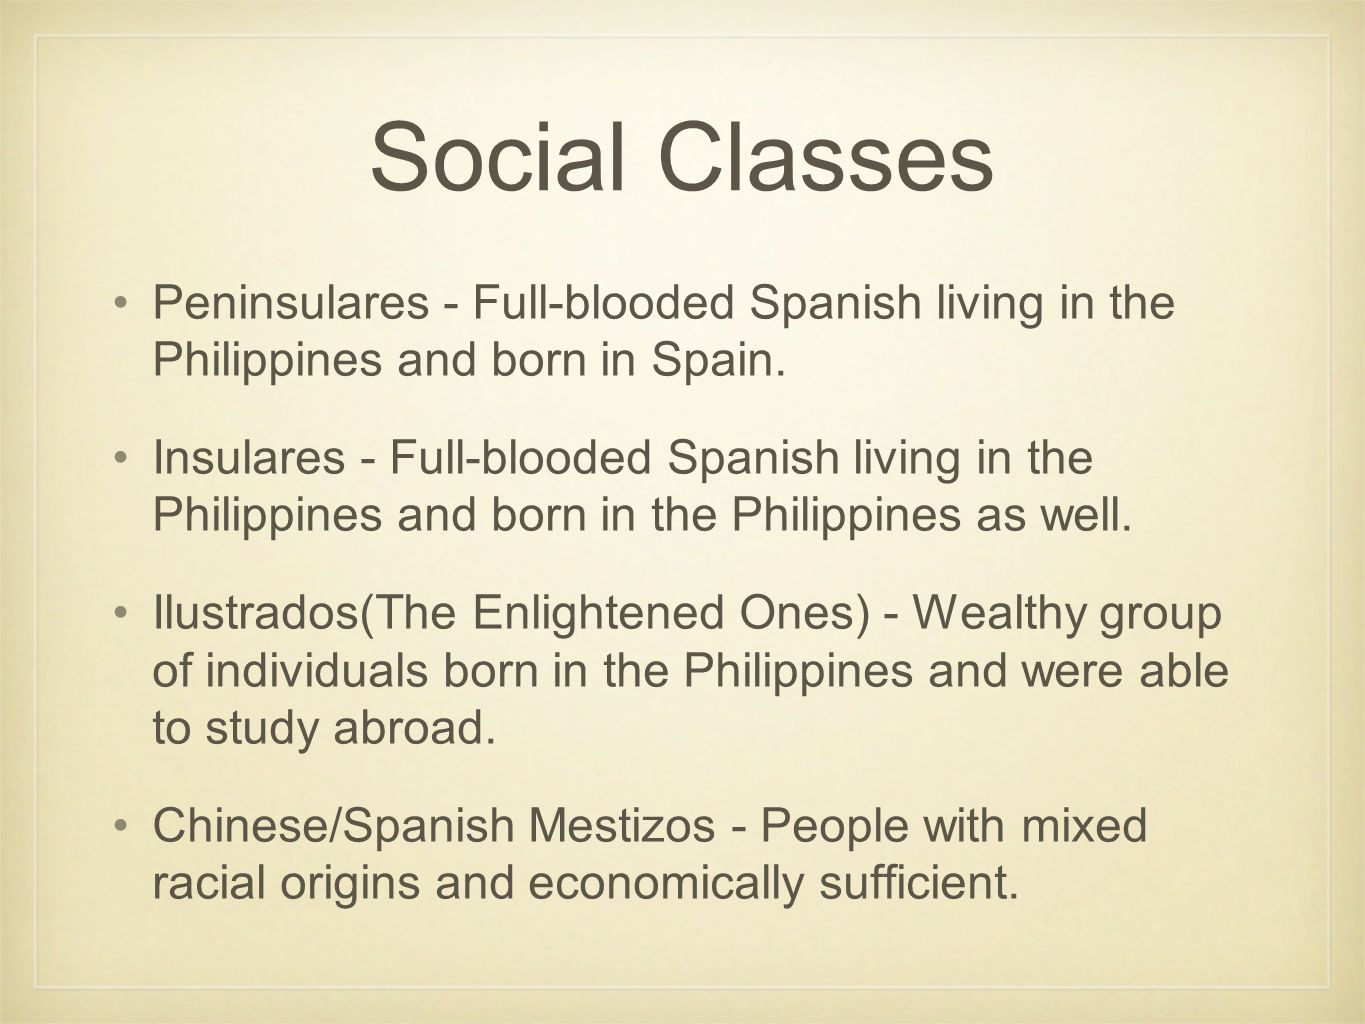 social stratification in the philippines The three social classes of the ancient philippines society were maginoo, timawa and alipin these classes followed the social model of upper class, middle class and lower class the maginoo was inclusive of several different types of people, including maharlika, datu and panginoon these were .